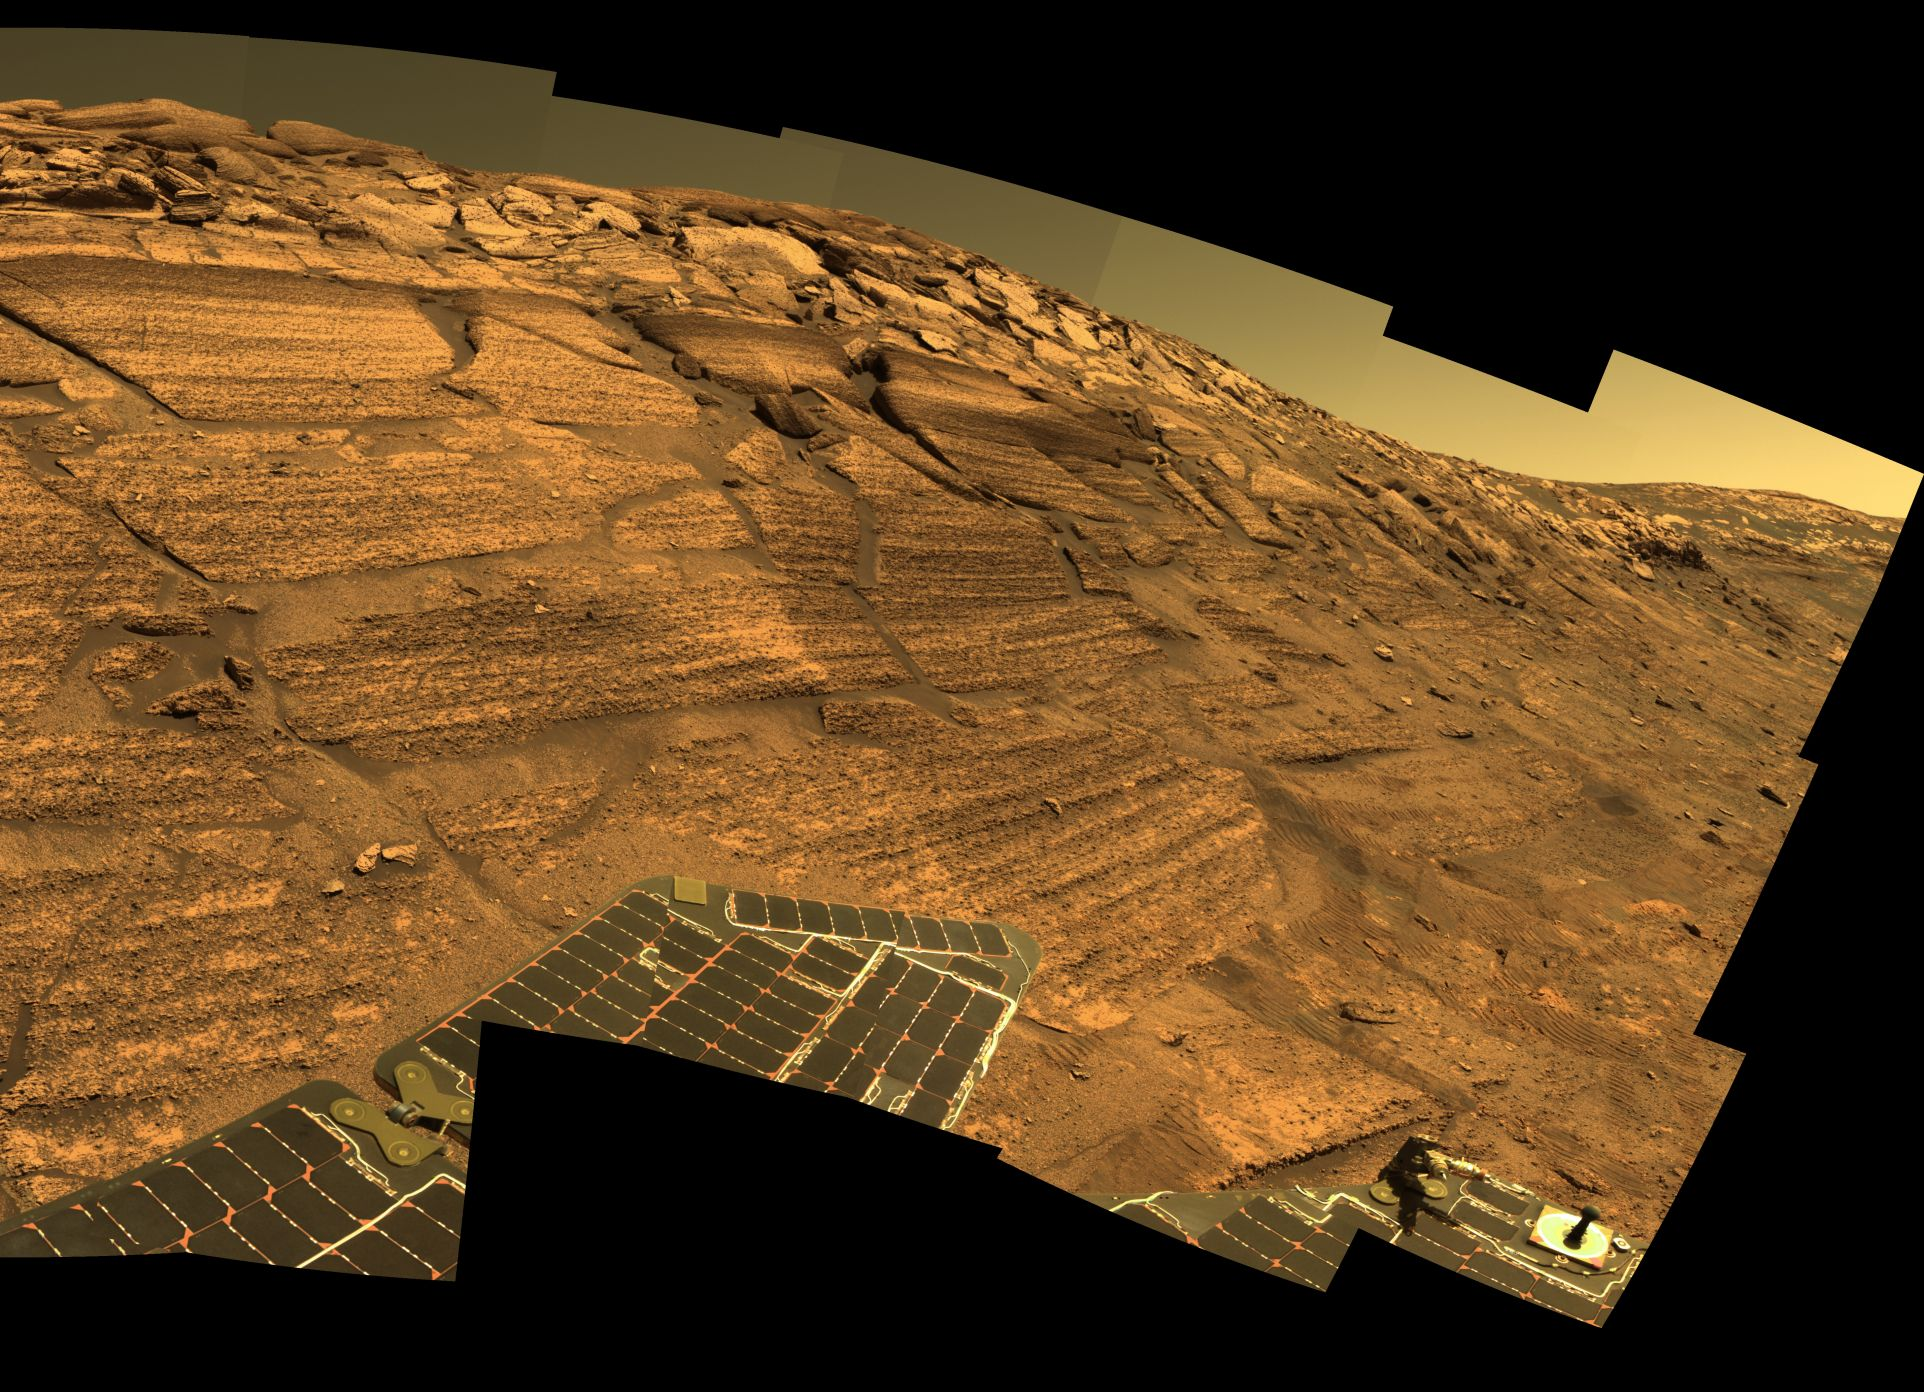 APOD: 2004 December 31 - A Year of Mars Roving